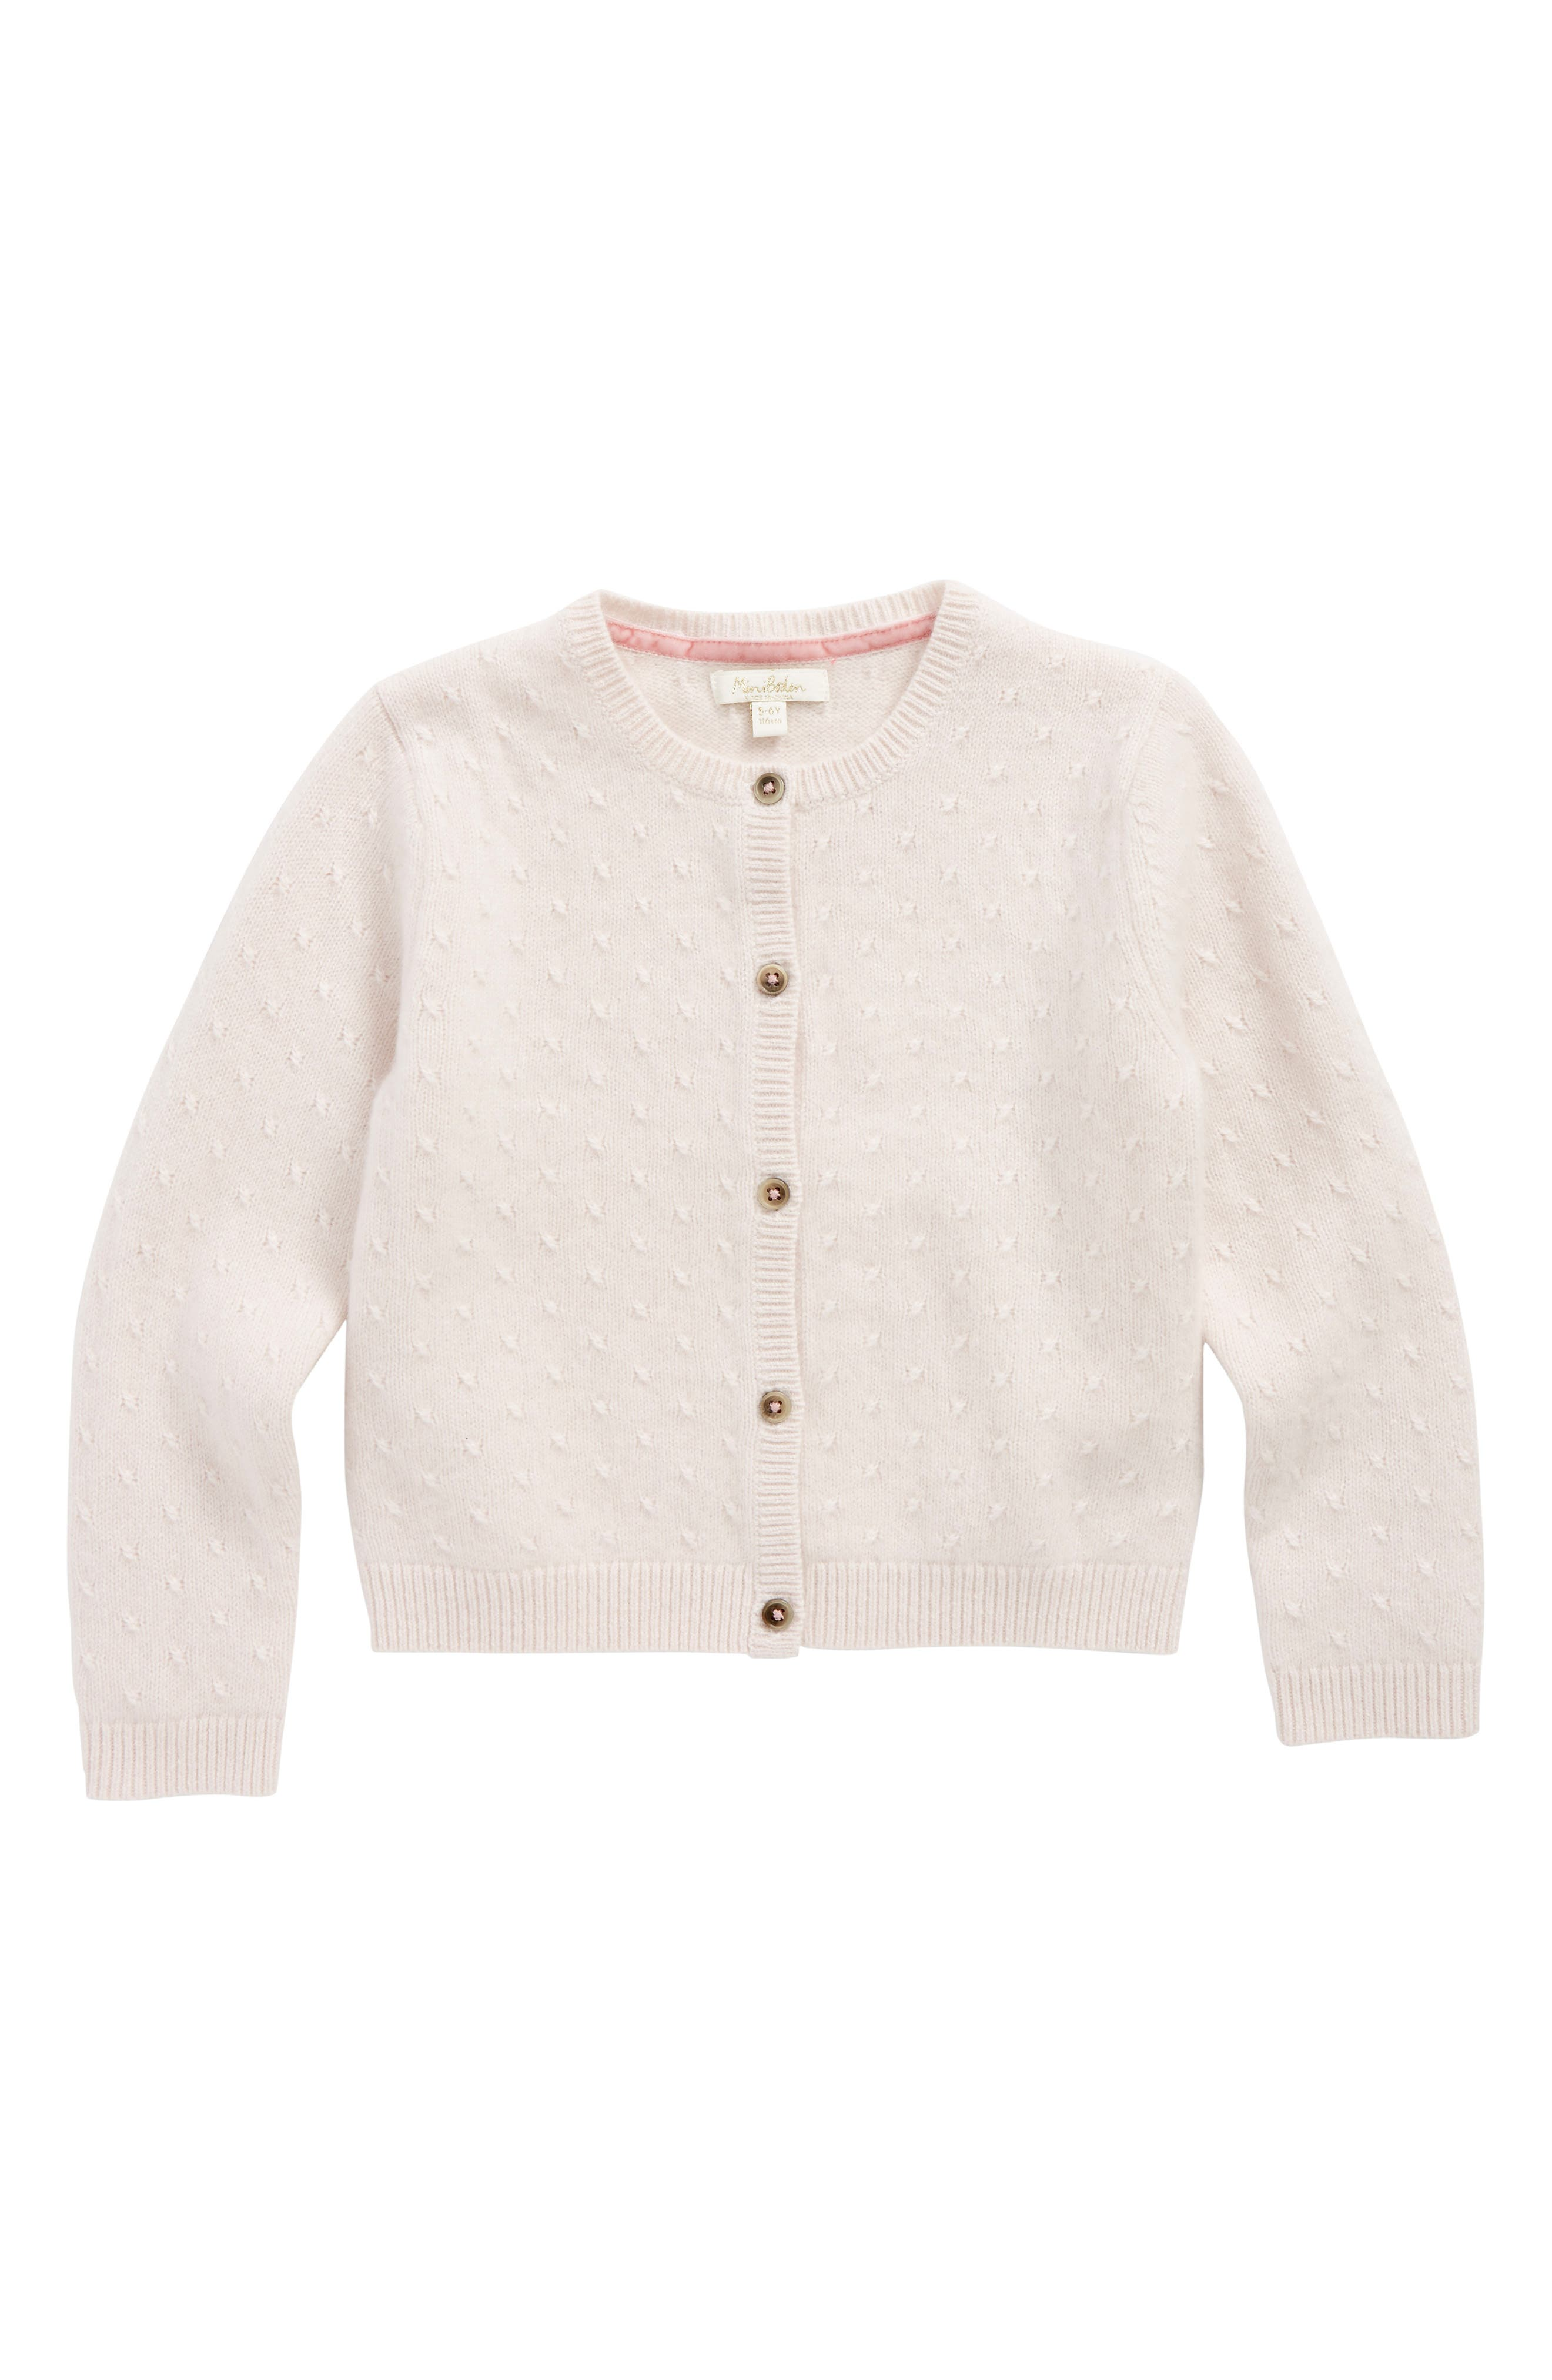 Mini Boden Cashmere Cardigan (Toddler Girls, Little Girls & Big Girls)